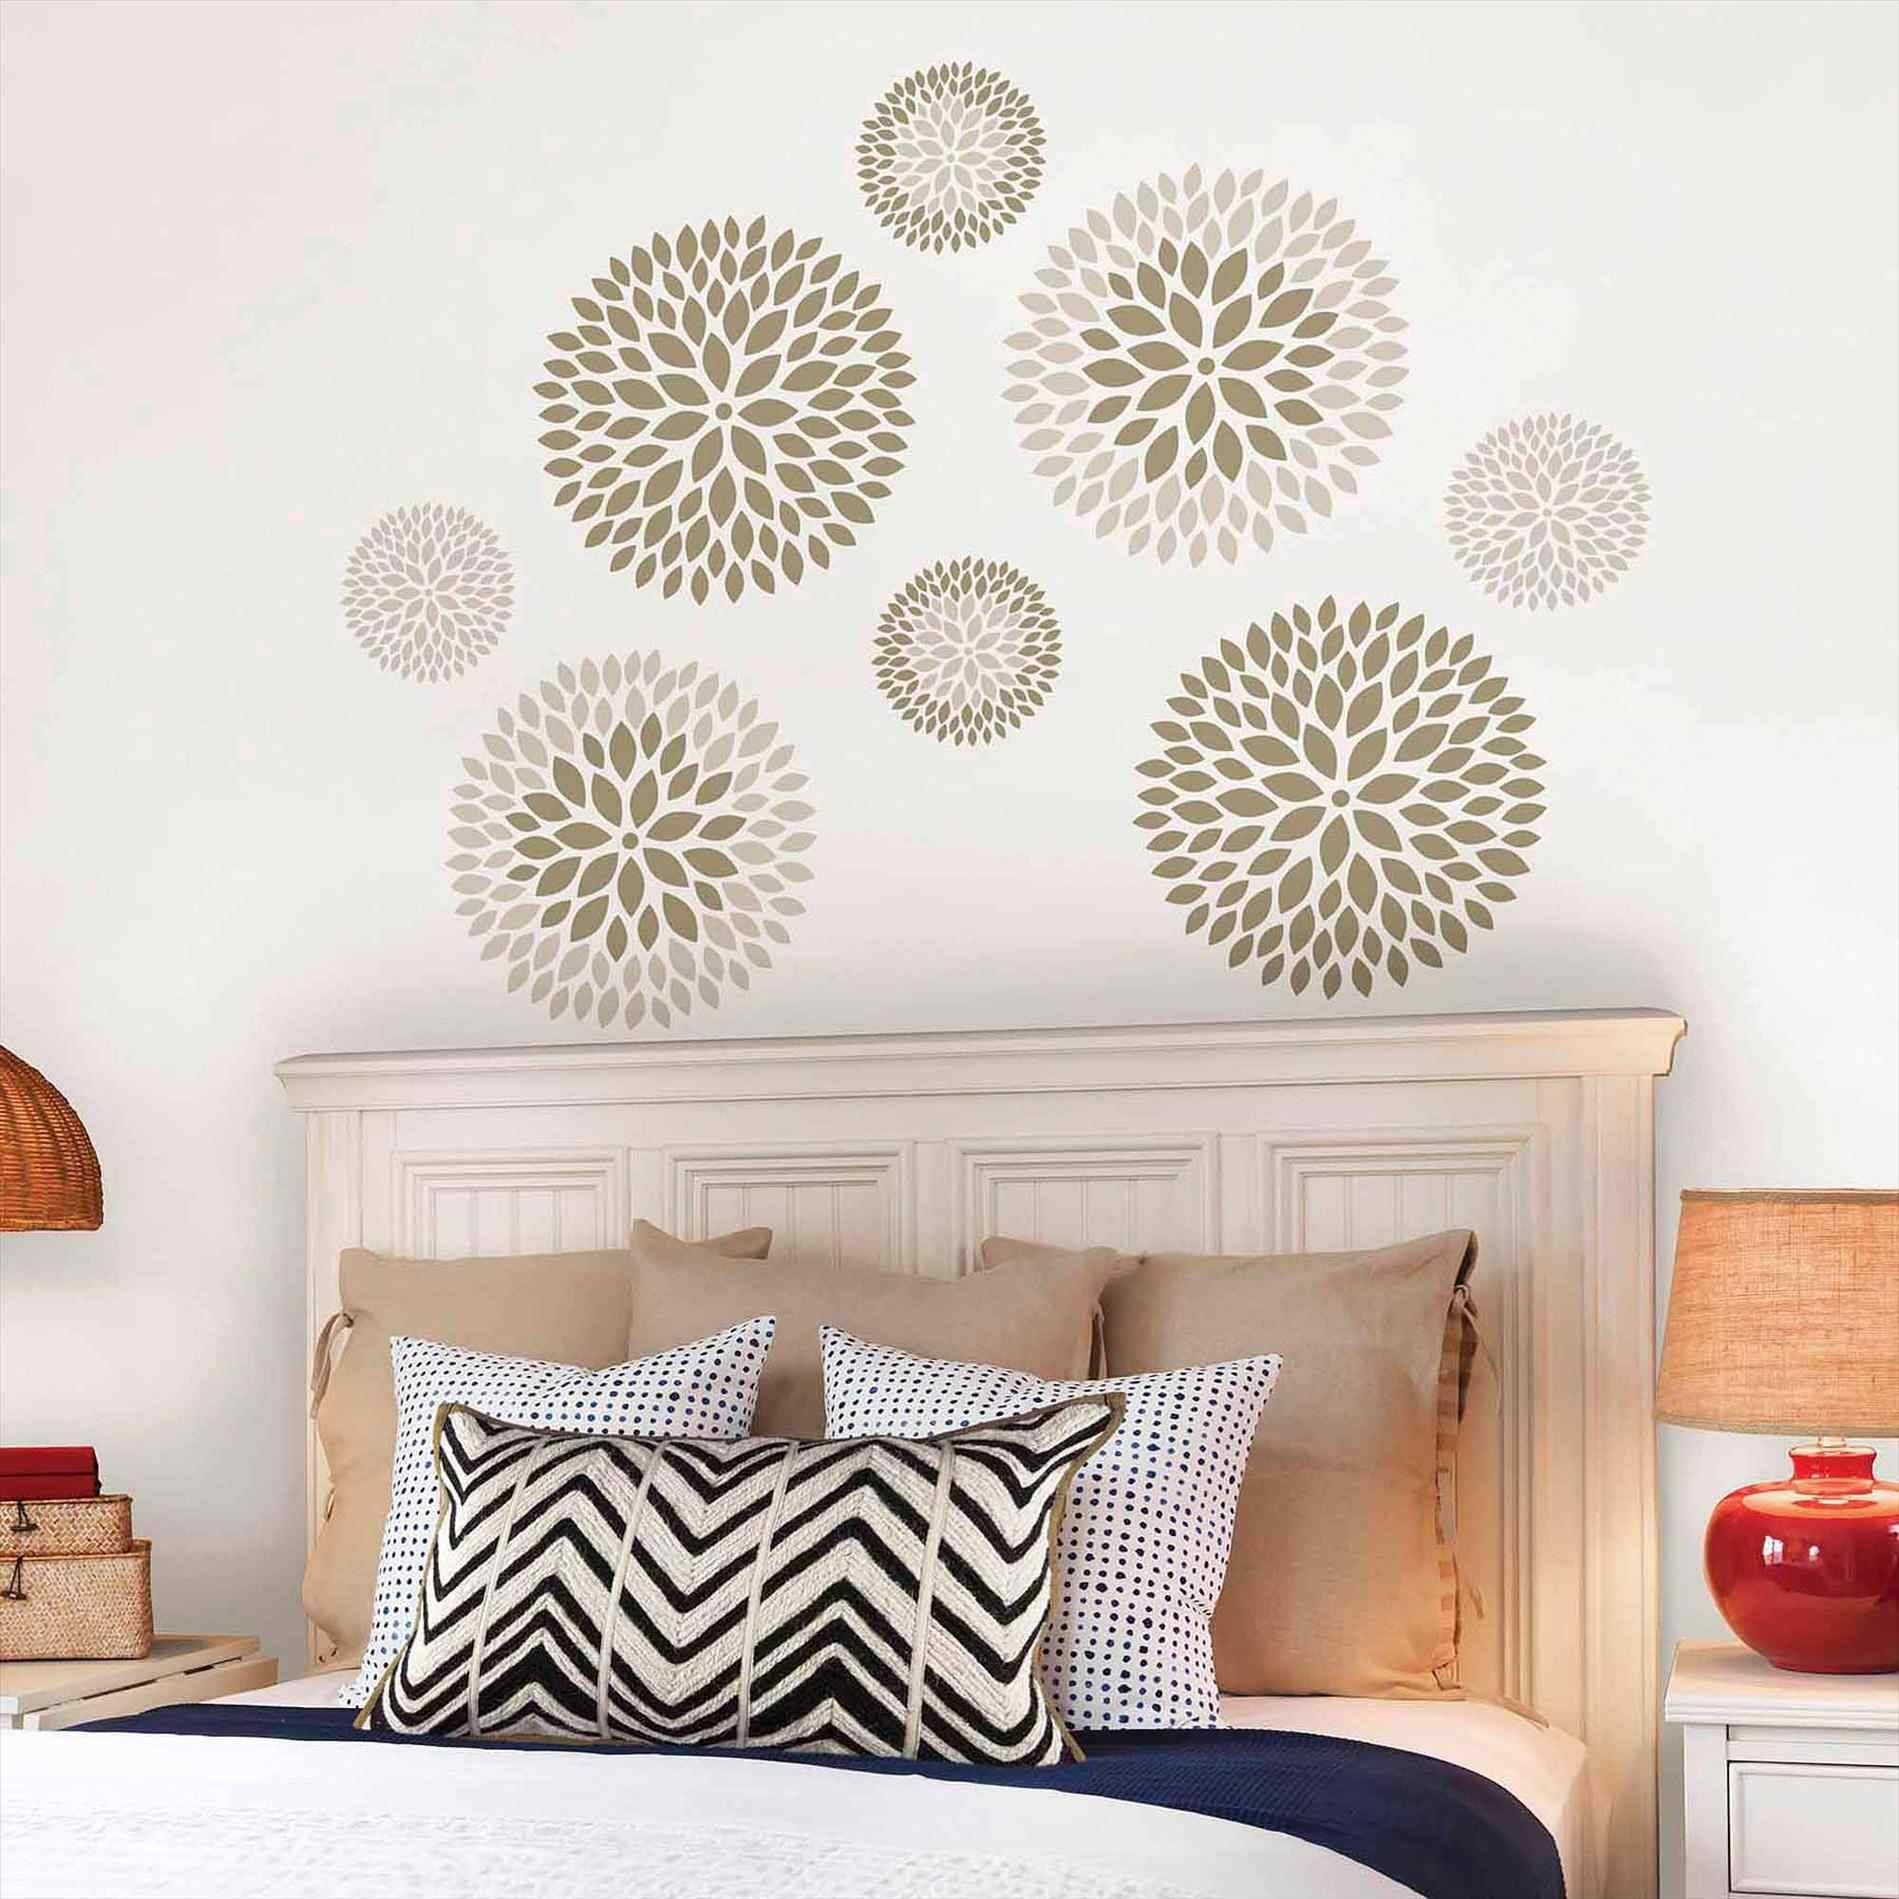 Big Damask Decals Wall Art Wall Decals For Bedroom Trends Also Pertaining To 2017 Art Nouveau Wall Decals (View 11 of 20)